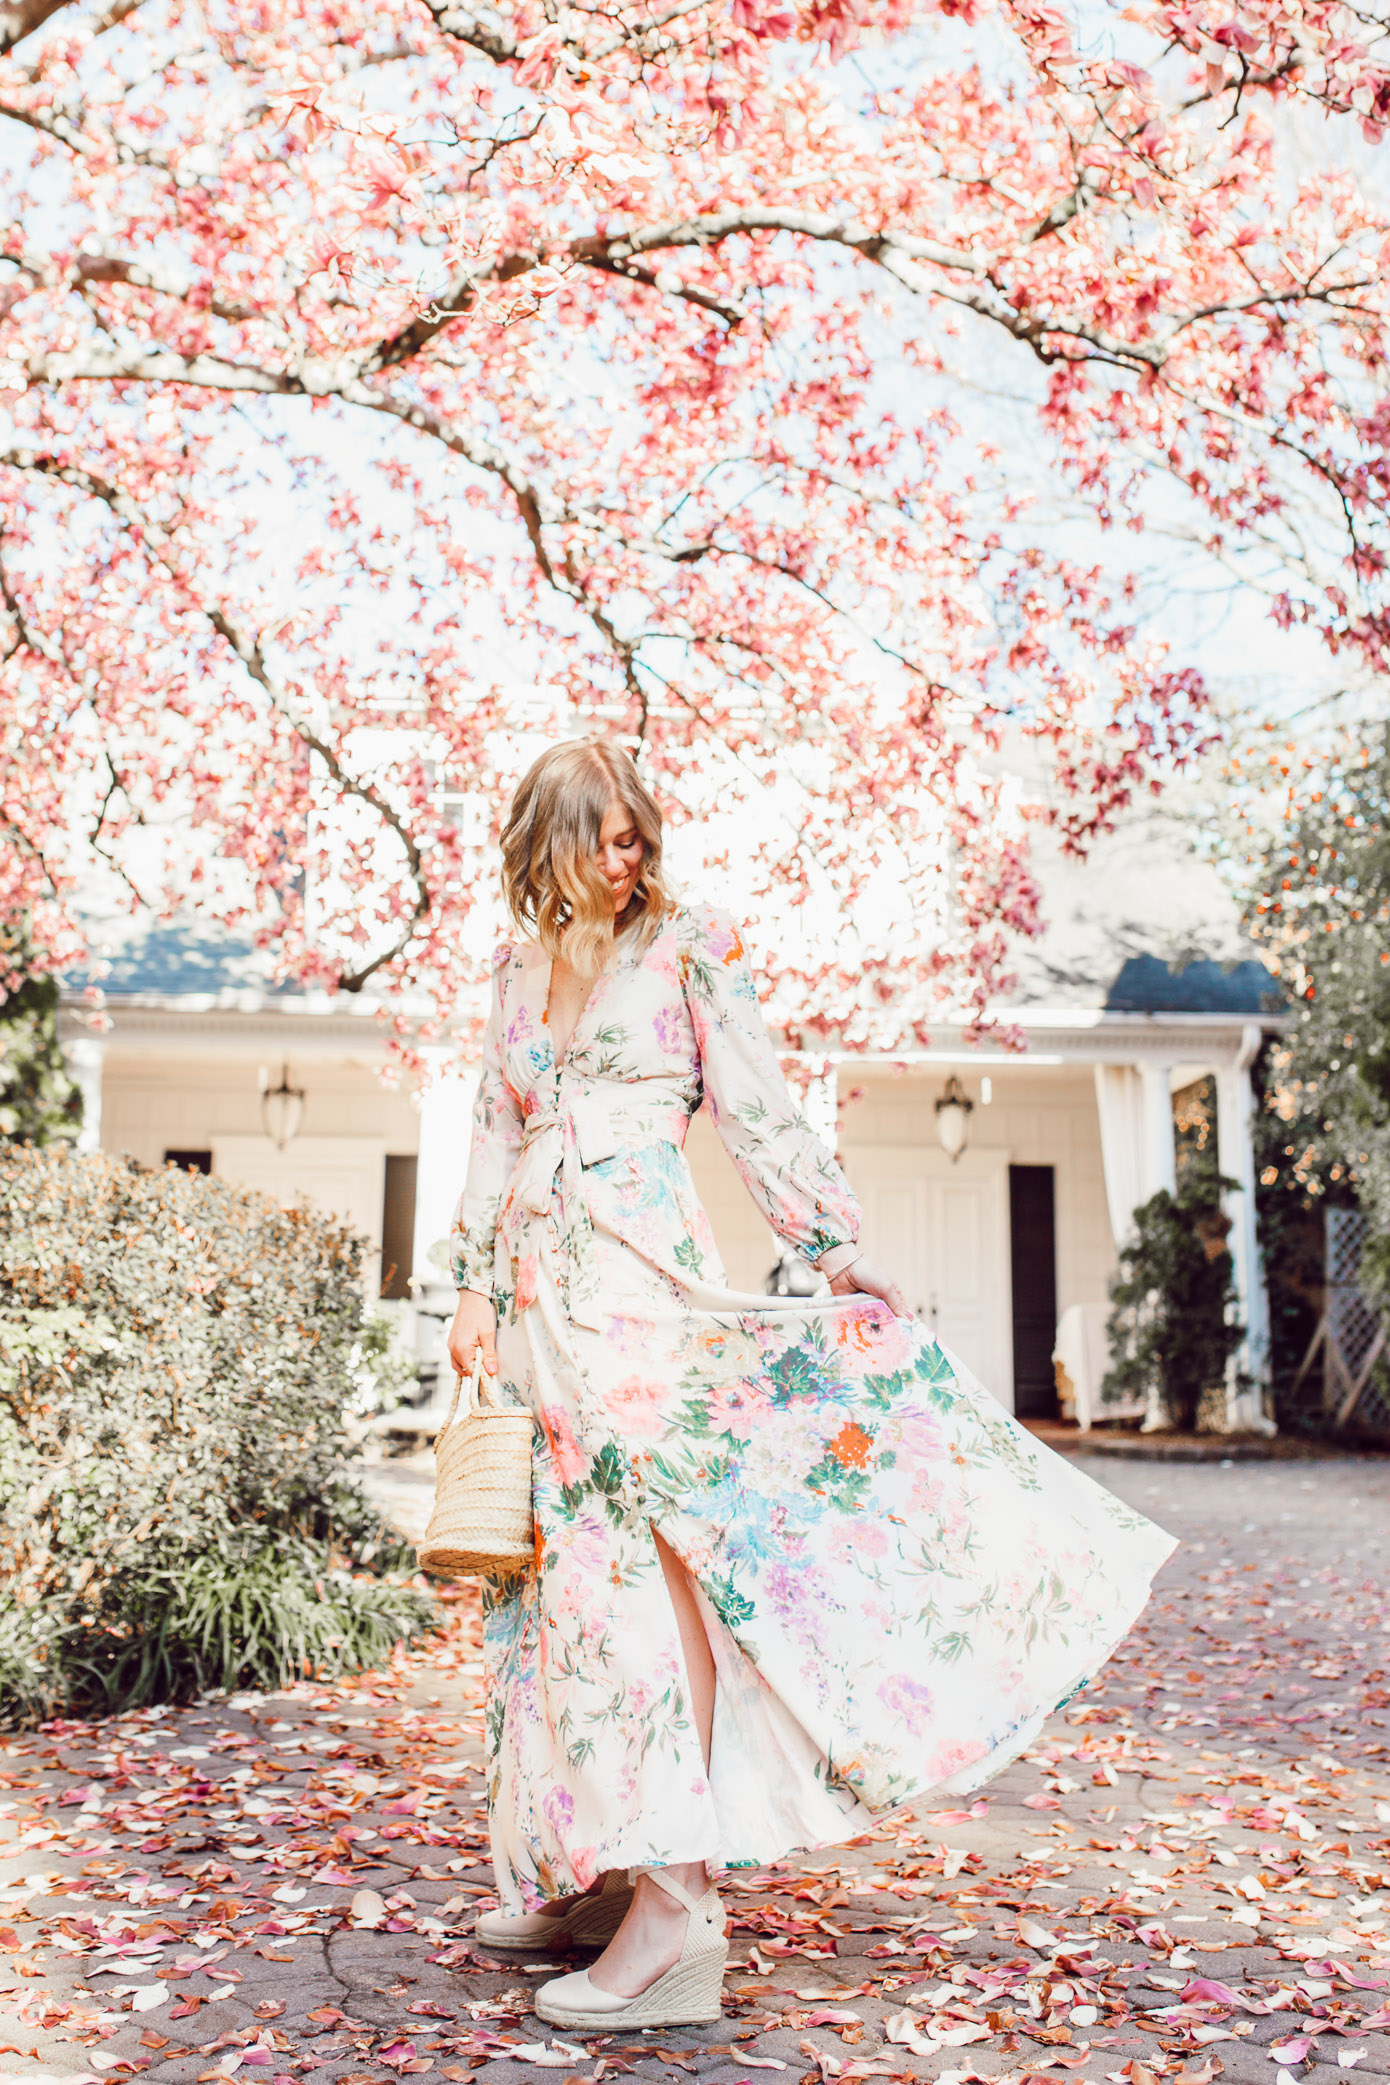 How to pull off a long sleeve floral maxi dress + the cutest maxi dresses to buy and wear this season | Louella Reese | ft. Chicwish, Soludos, Lisi Lerch